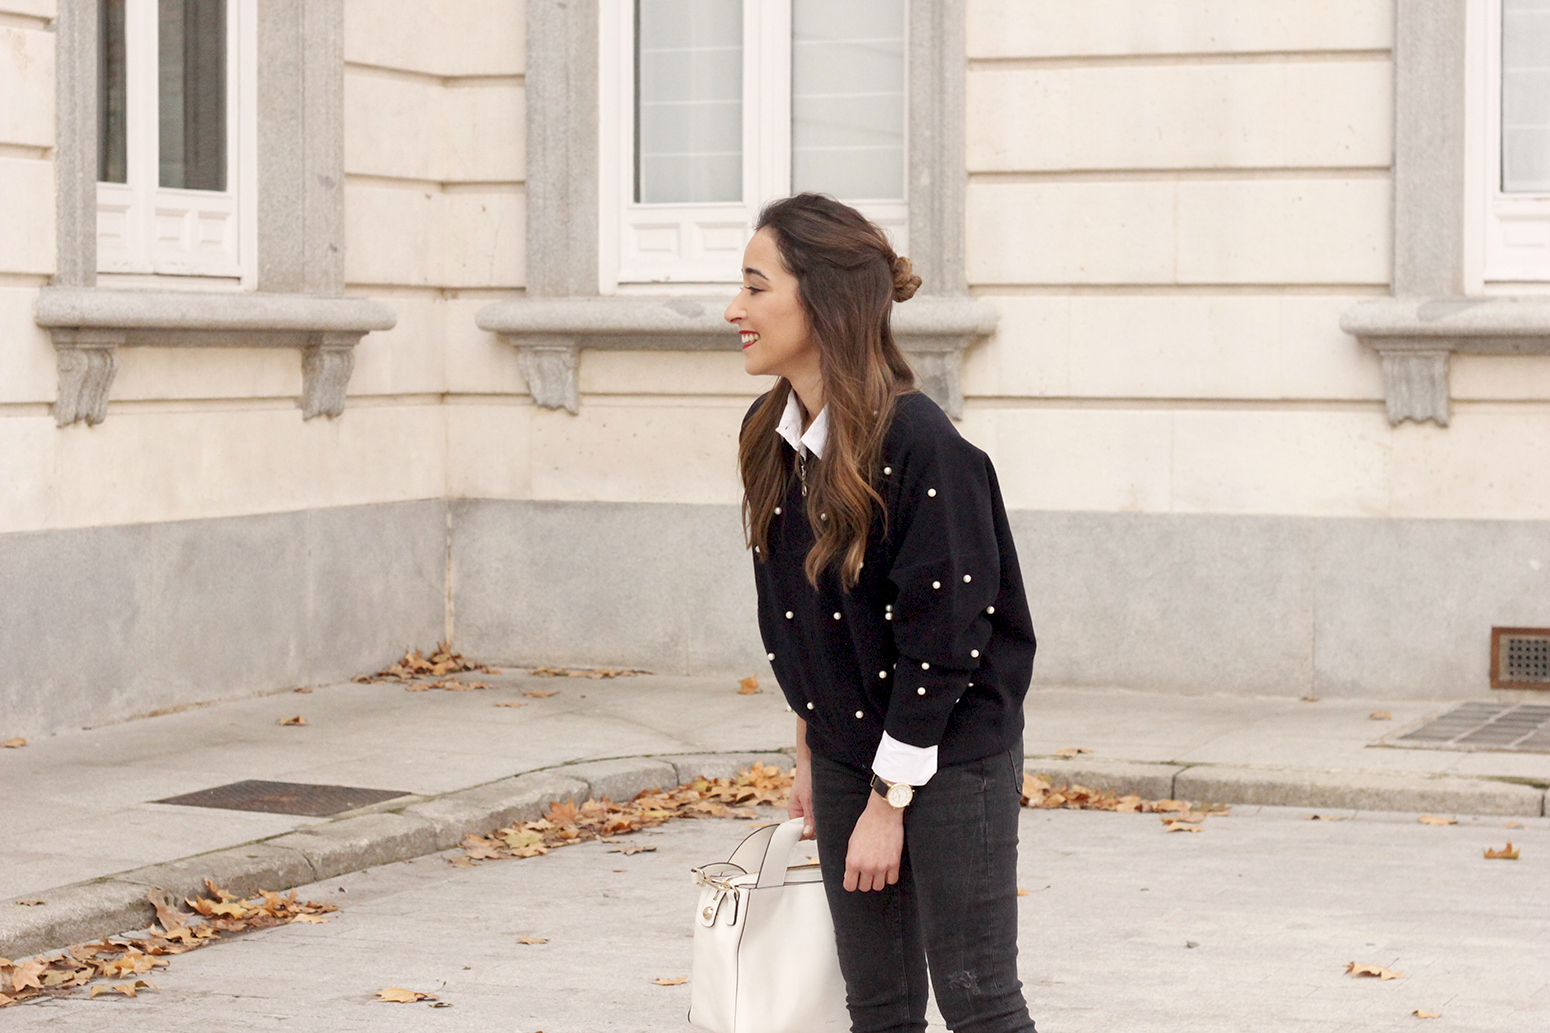 pearl bomber uterqüe black jeans white bag winter outfit 2018 style fashionbomber08